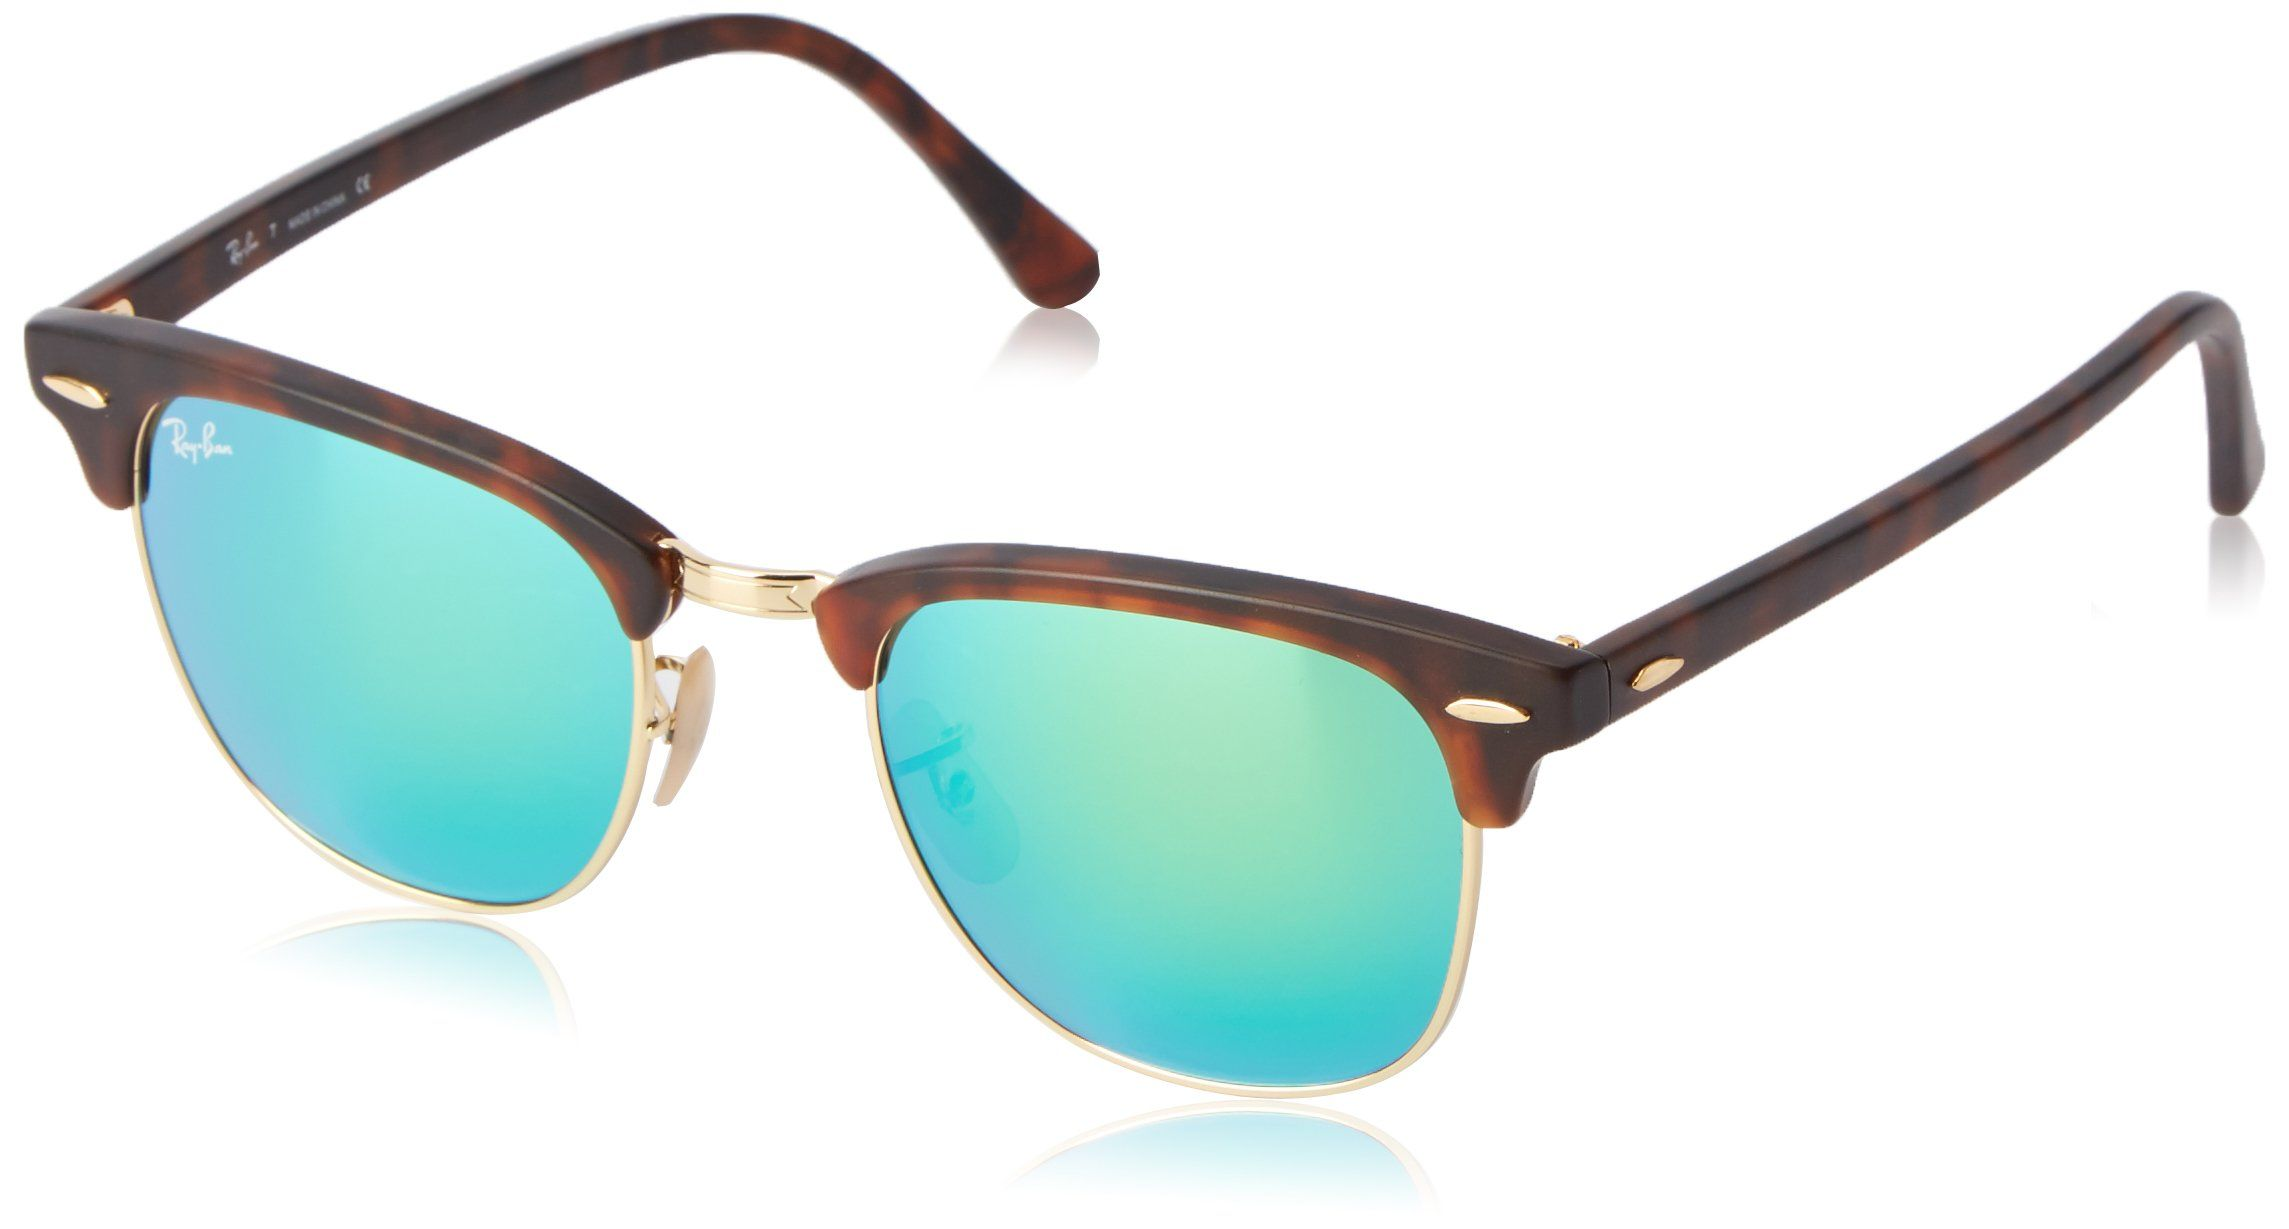 342d96482 Amazon.com: Ray-Ban RB3016 Classic Clubmaster Sunglasses, Non-Polarized,  Tortoise/Arista Frame/Crystal Green Lens, 51 mm: Ray-Ban: Clothing